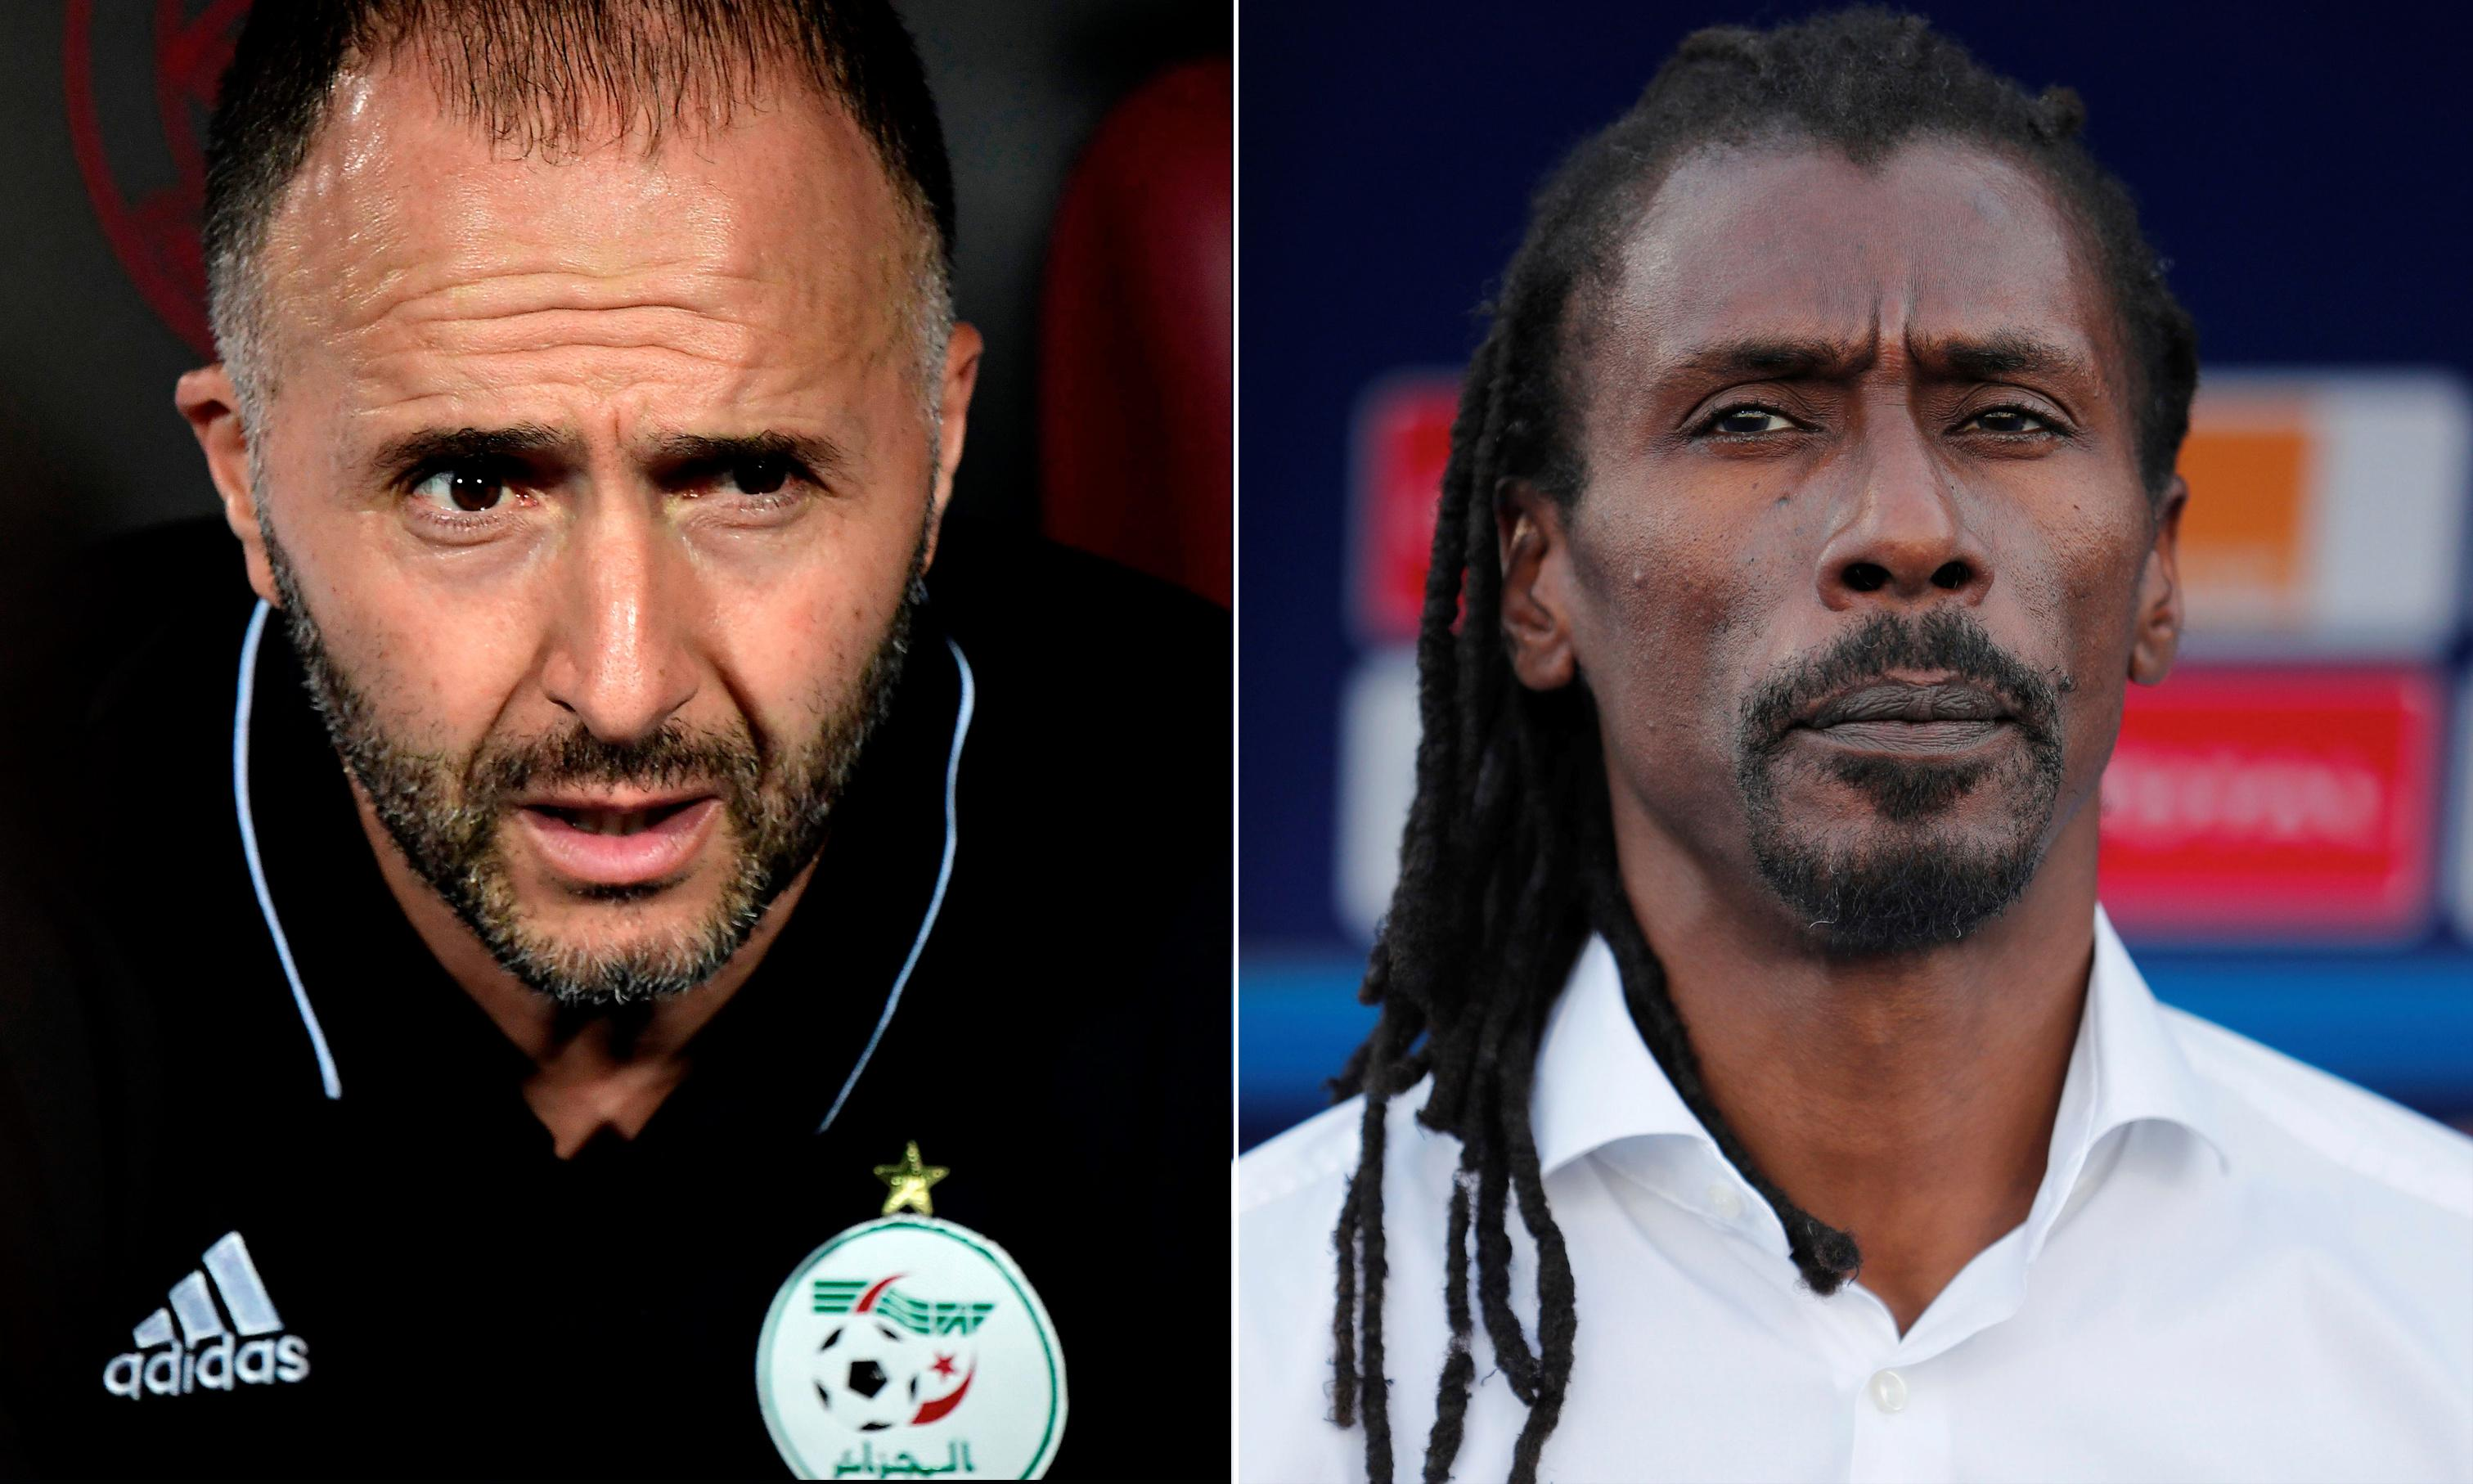 Afcon final unites two African coaches who represent the future